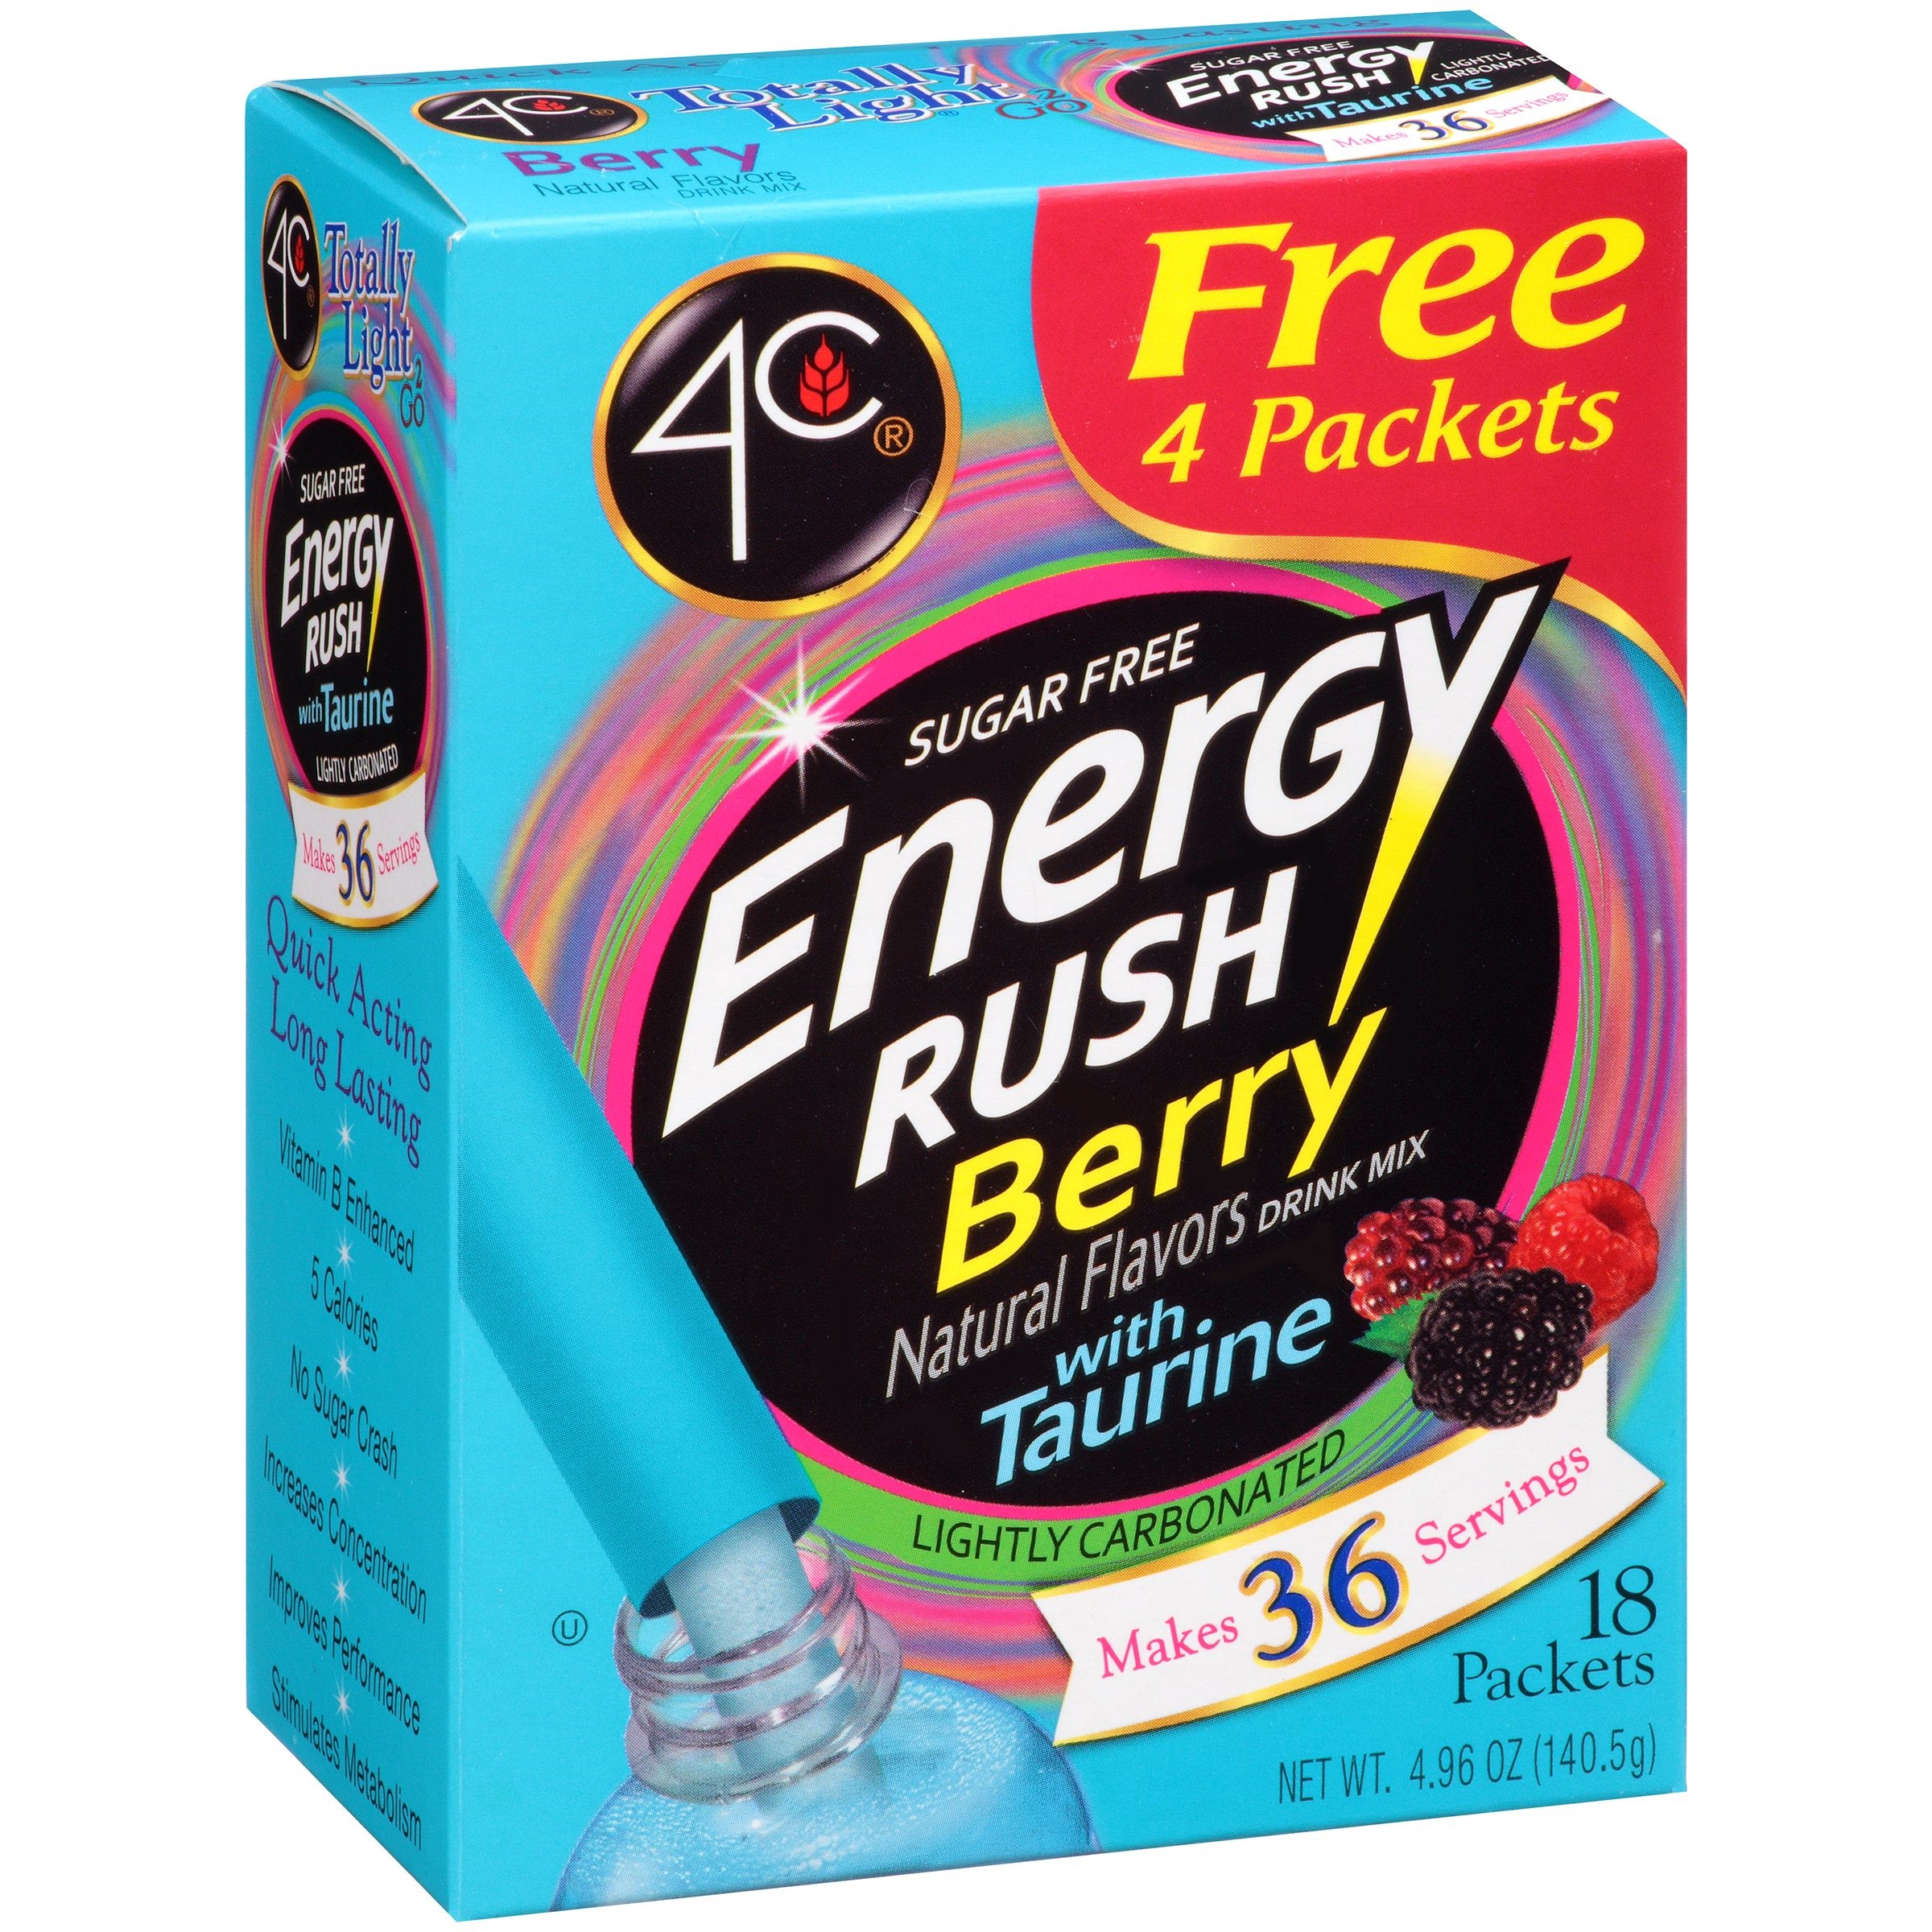 4C Totally Light 2Go Energy Drink Mix, Berry, 36 Servings